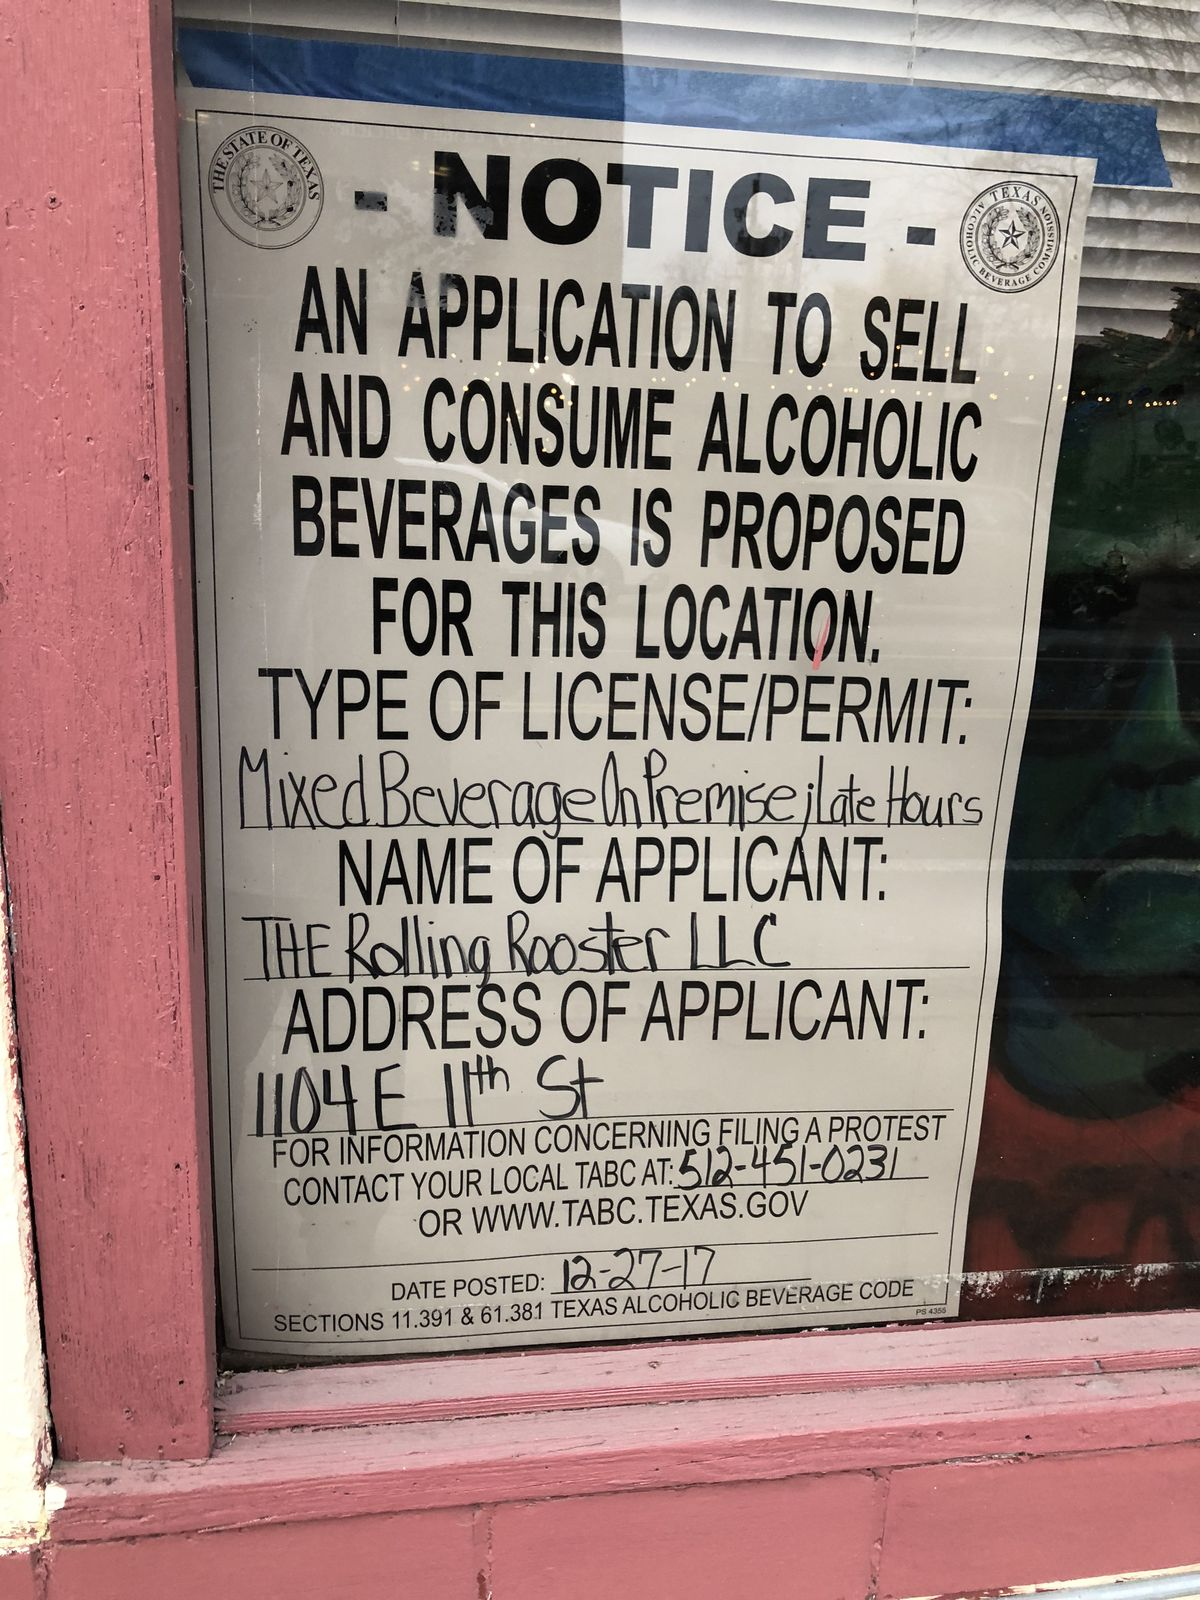 Rolling Rooster's TABC permit application